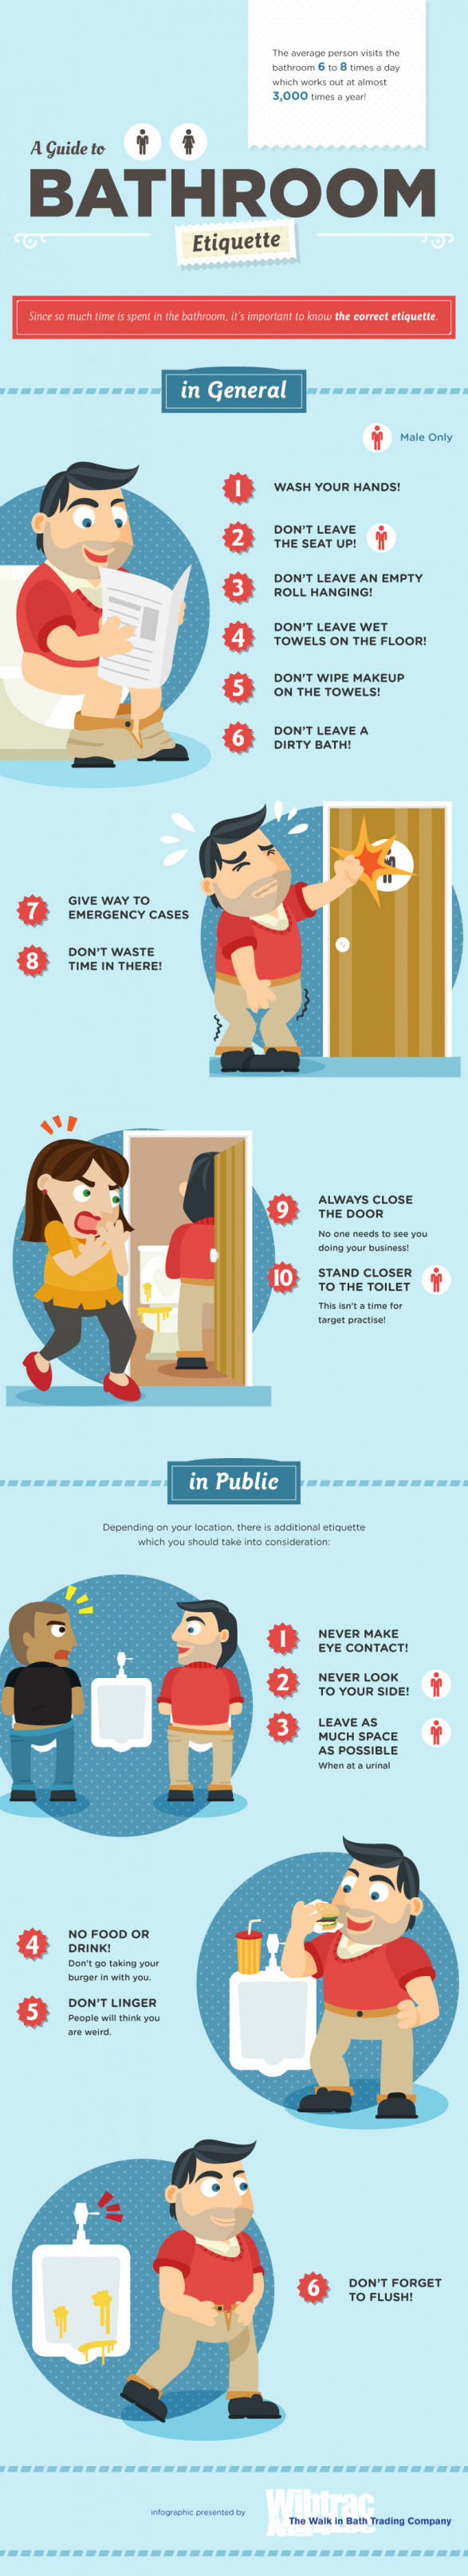 A guide to bathroom etiquette